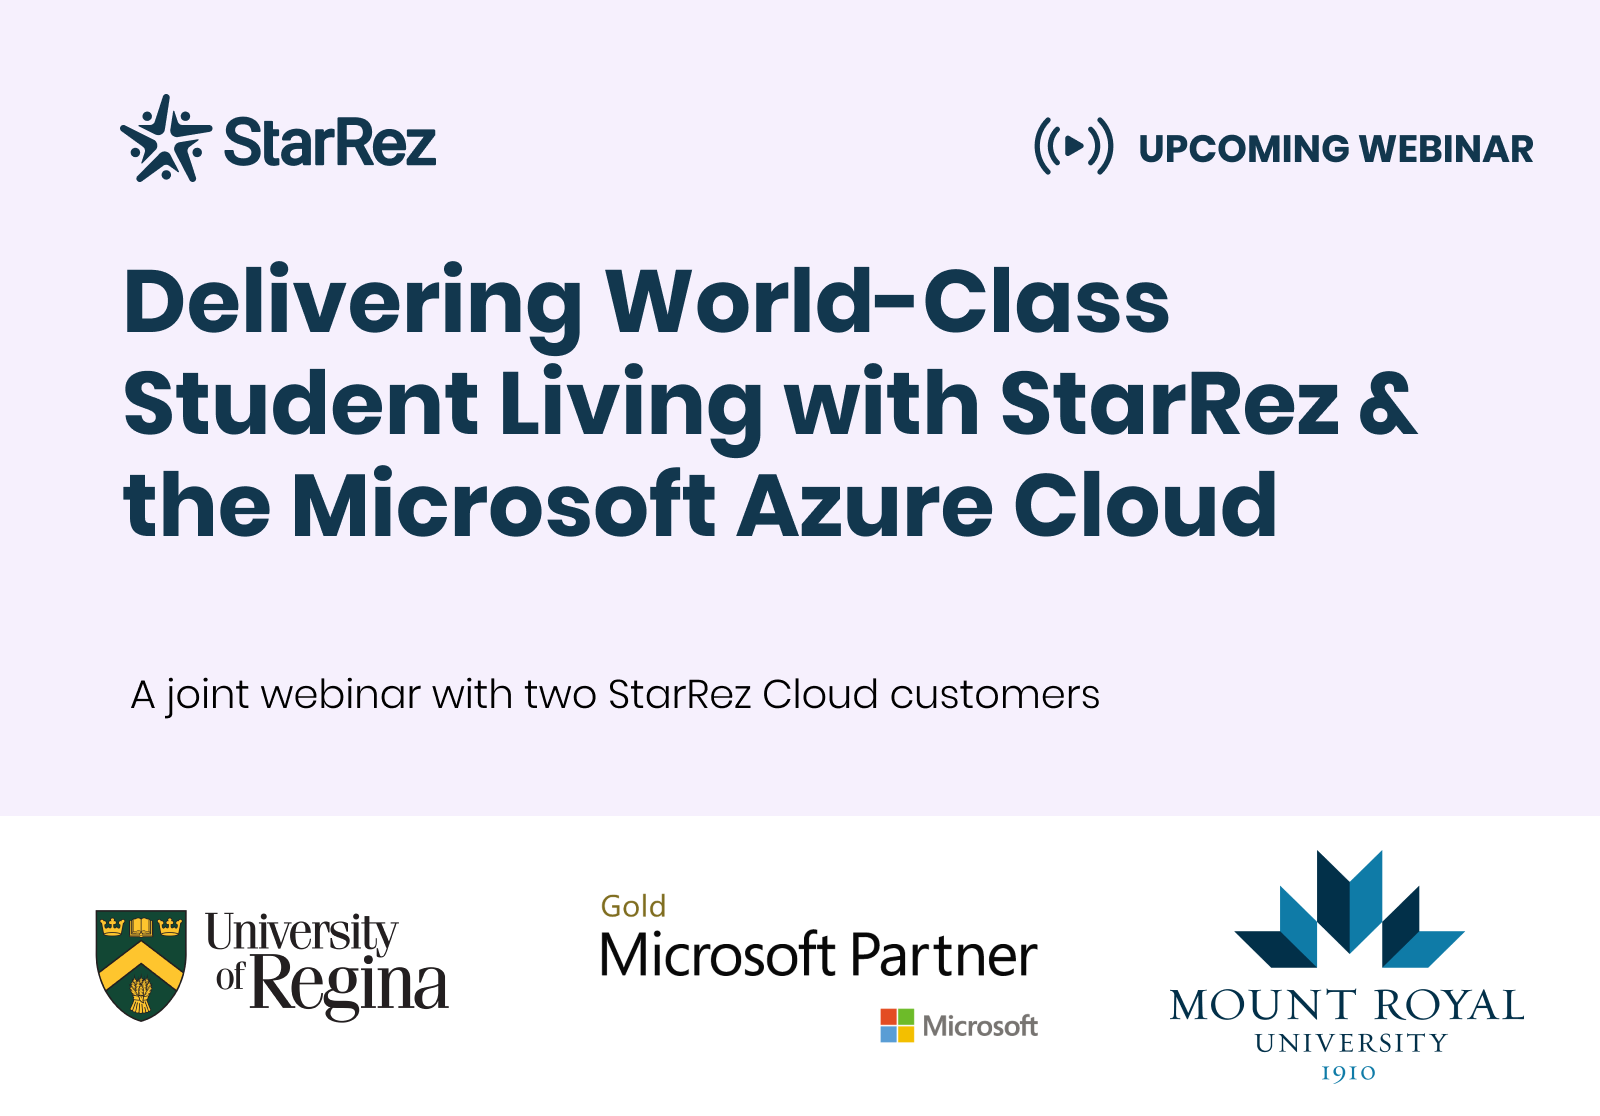 Delivering World-Class Student Living with StarRez and Microsoft Azure Cloud